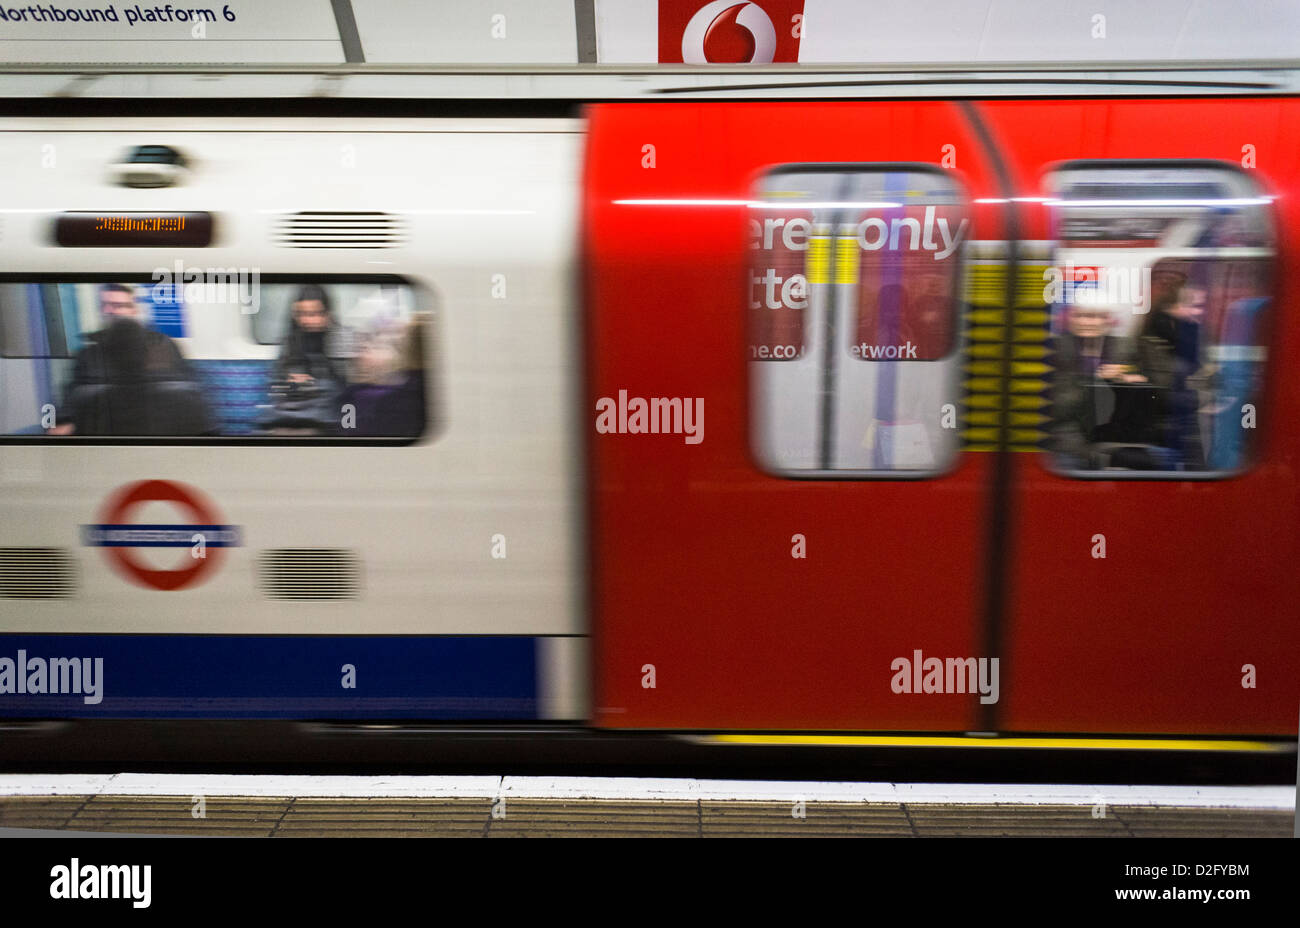 London Underground tube train moving, London, England, UK - Stock Image